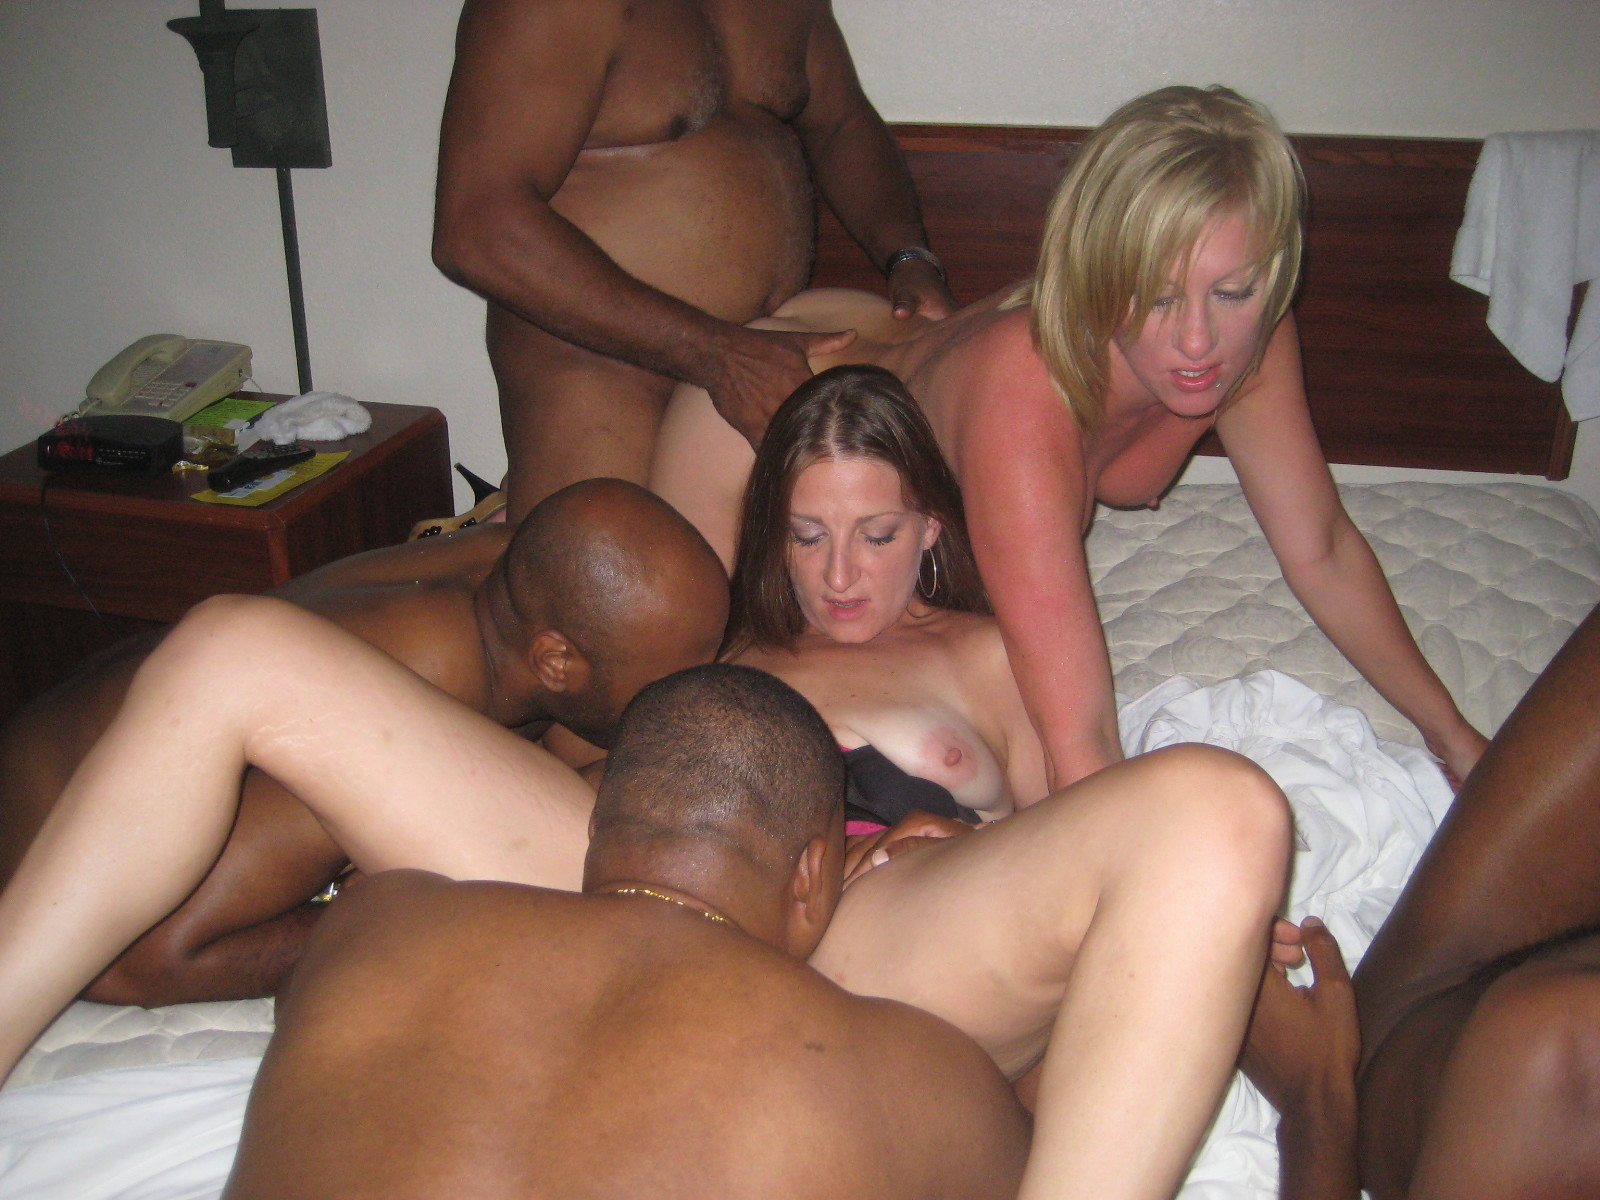 Women attend orgies who